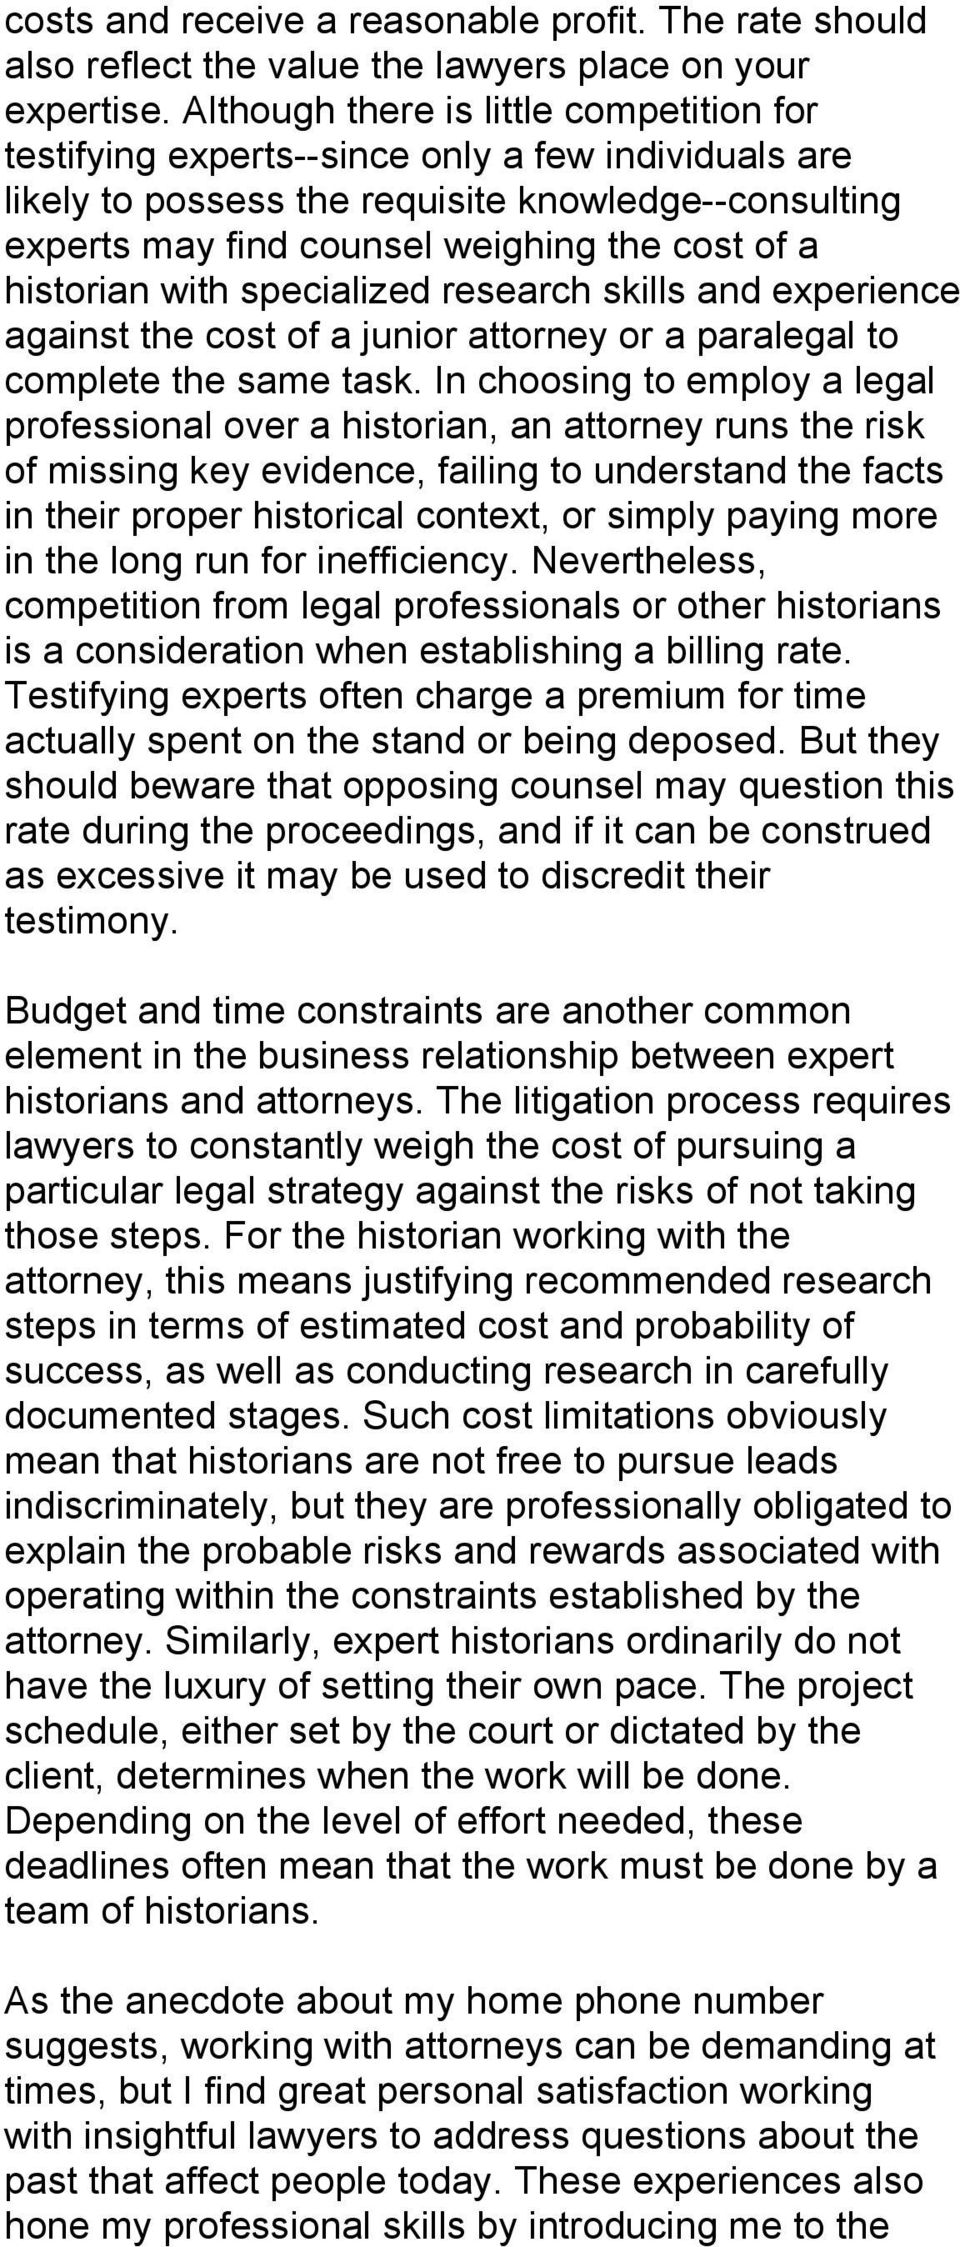 historian with specialized research skills and experience against the cost of a junior attorney or a paralegal to complete the same task.